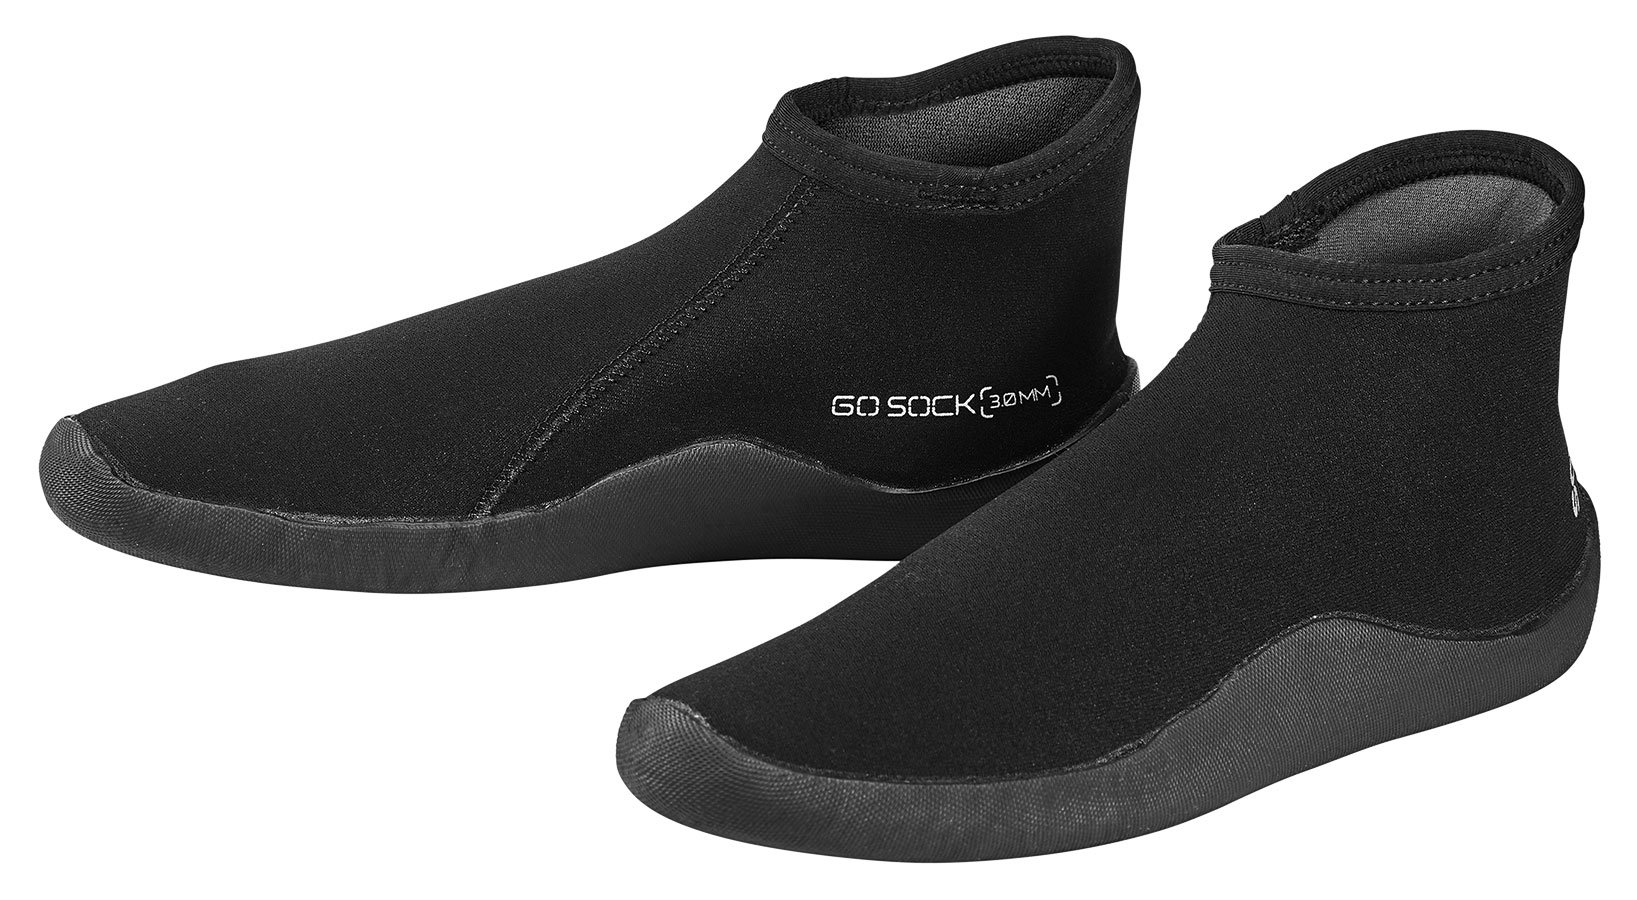 Scubapro Go Sock 3mm Thin Sole - Black